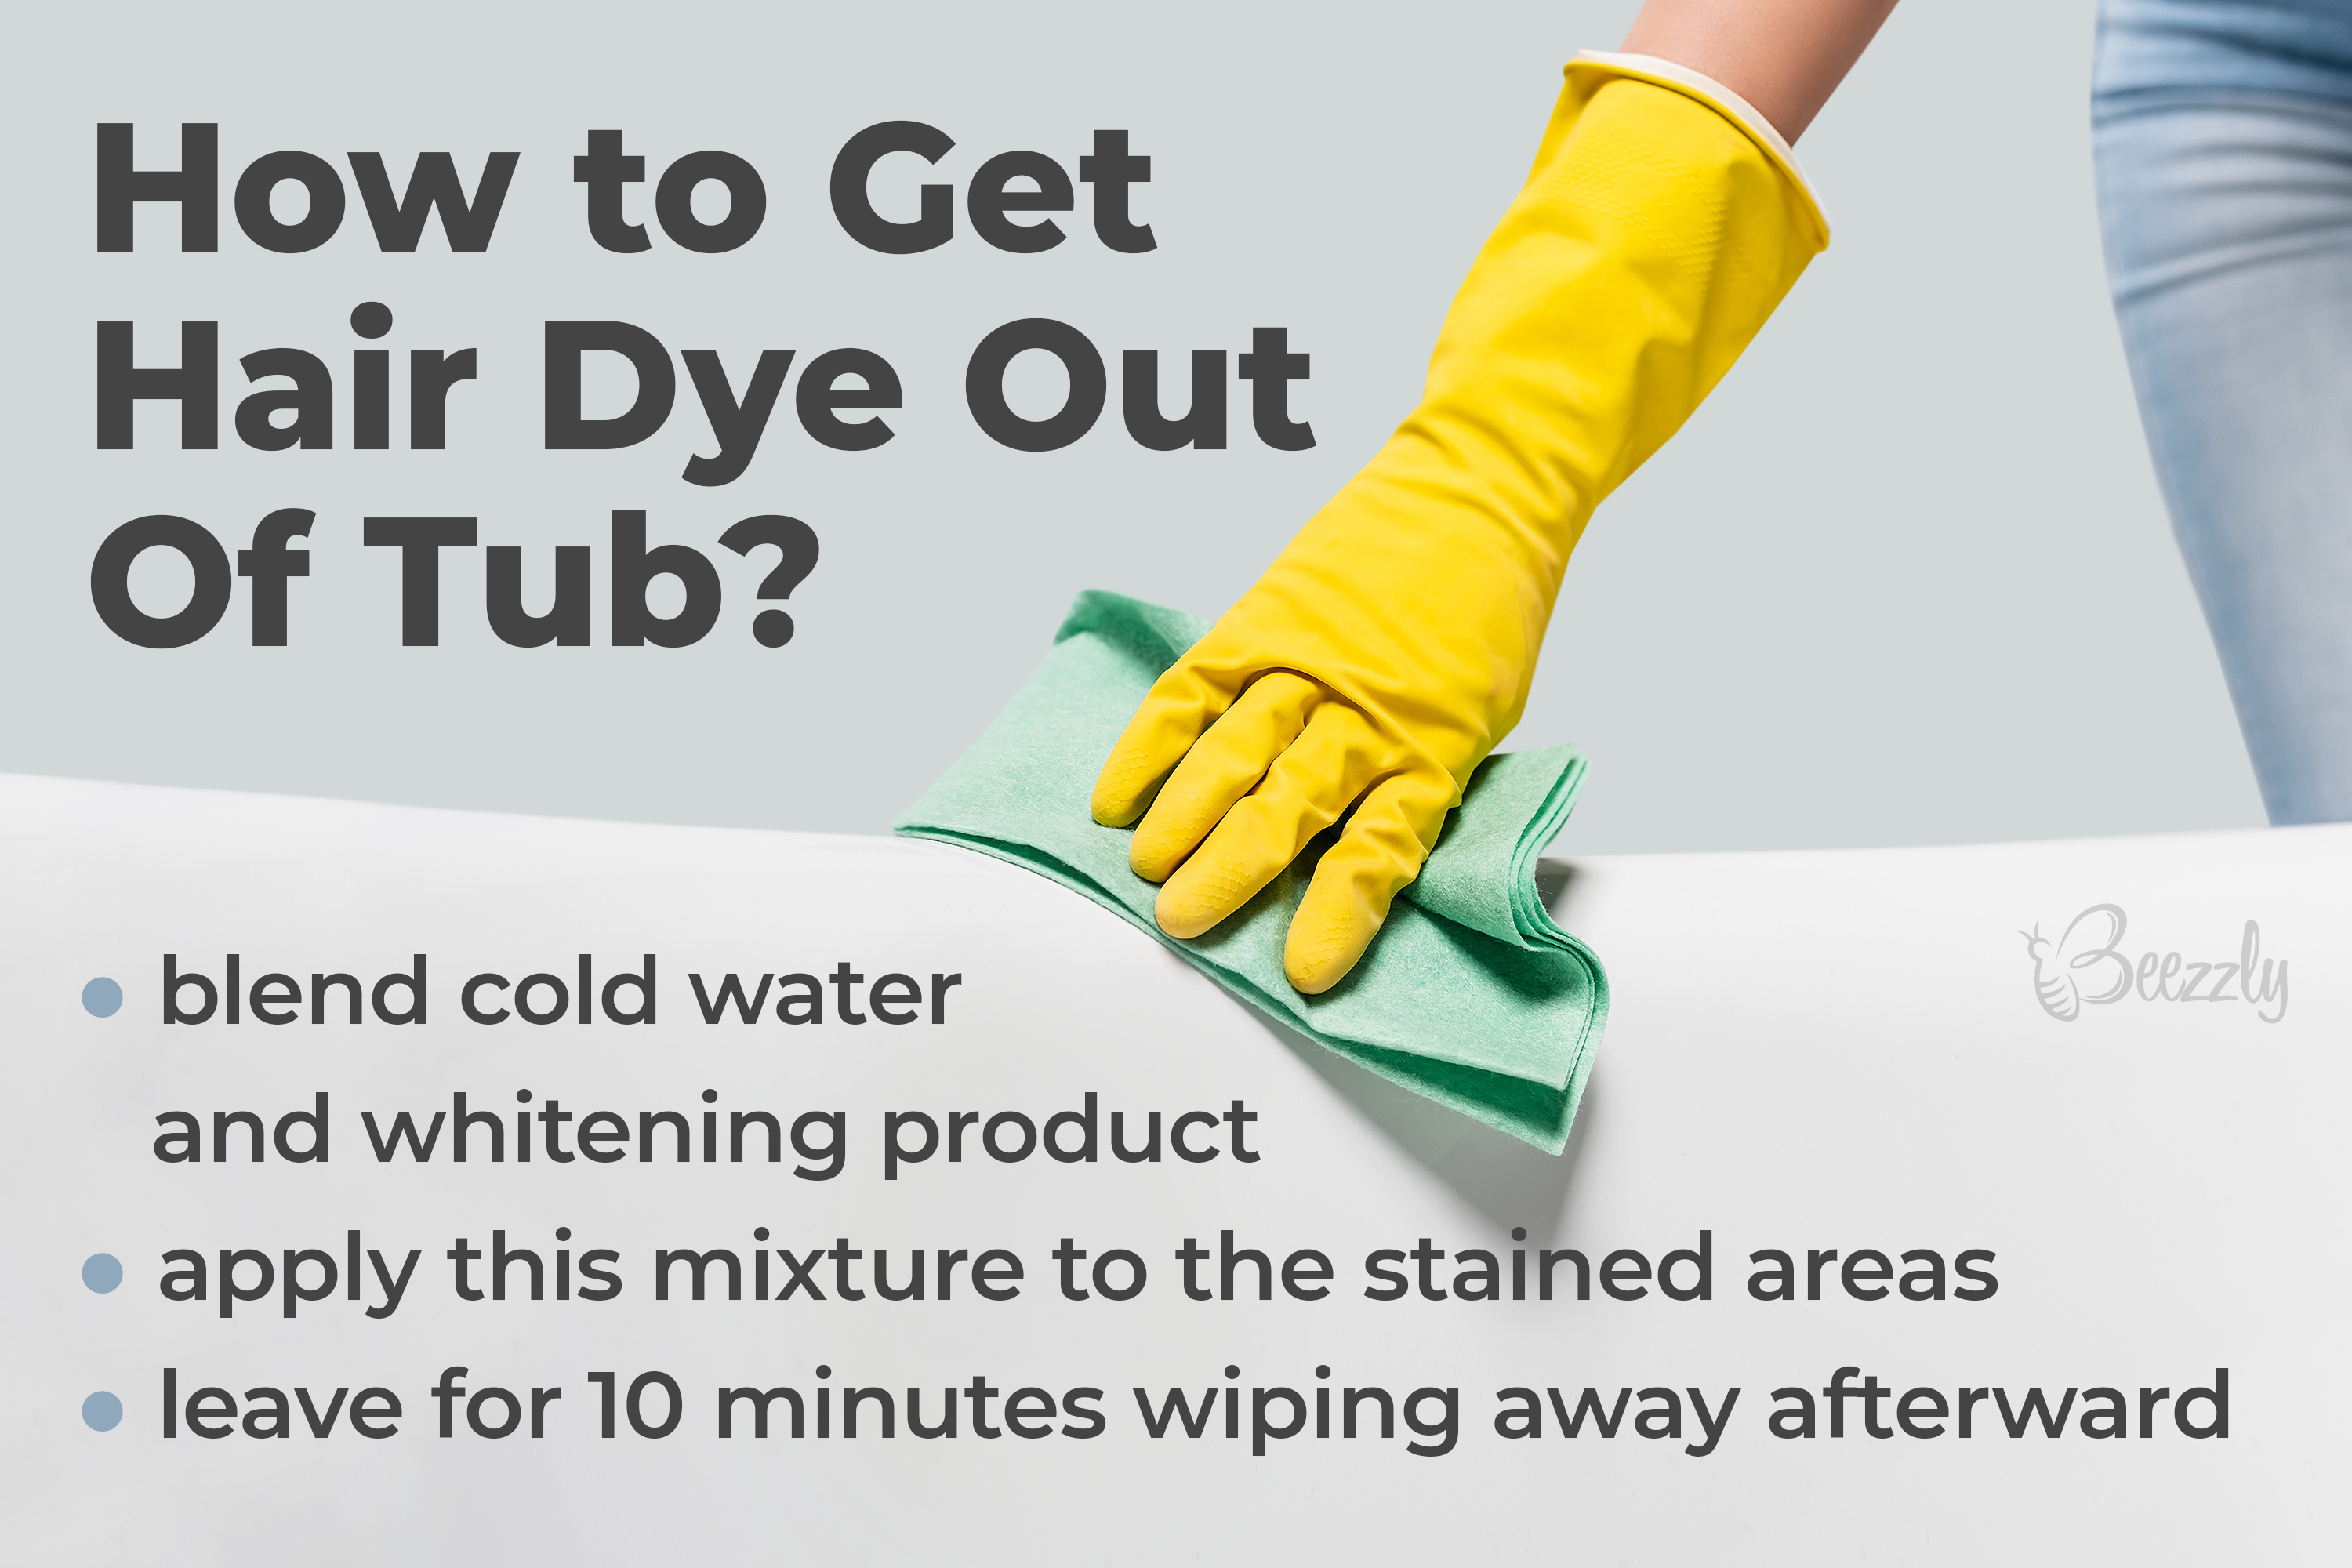 How to Get Hair Dye Out Of Tub